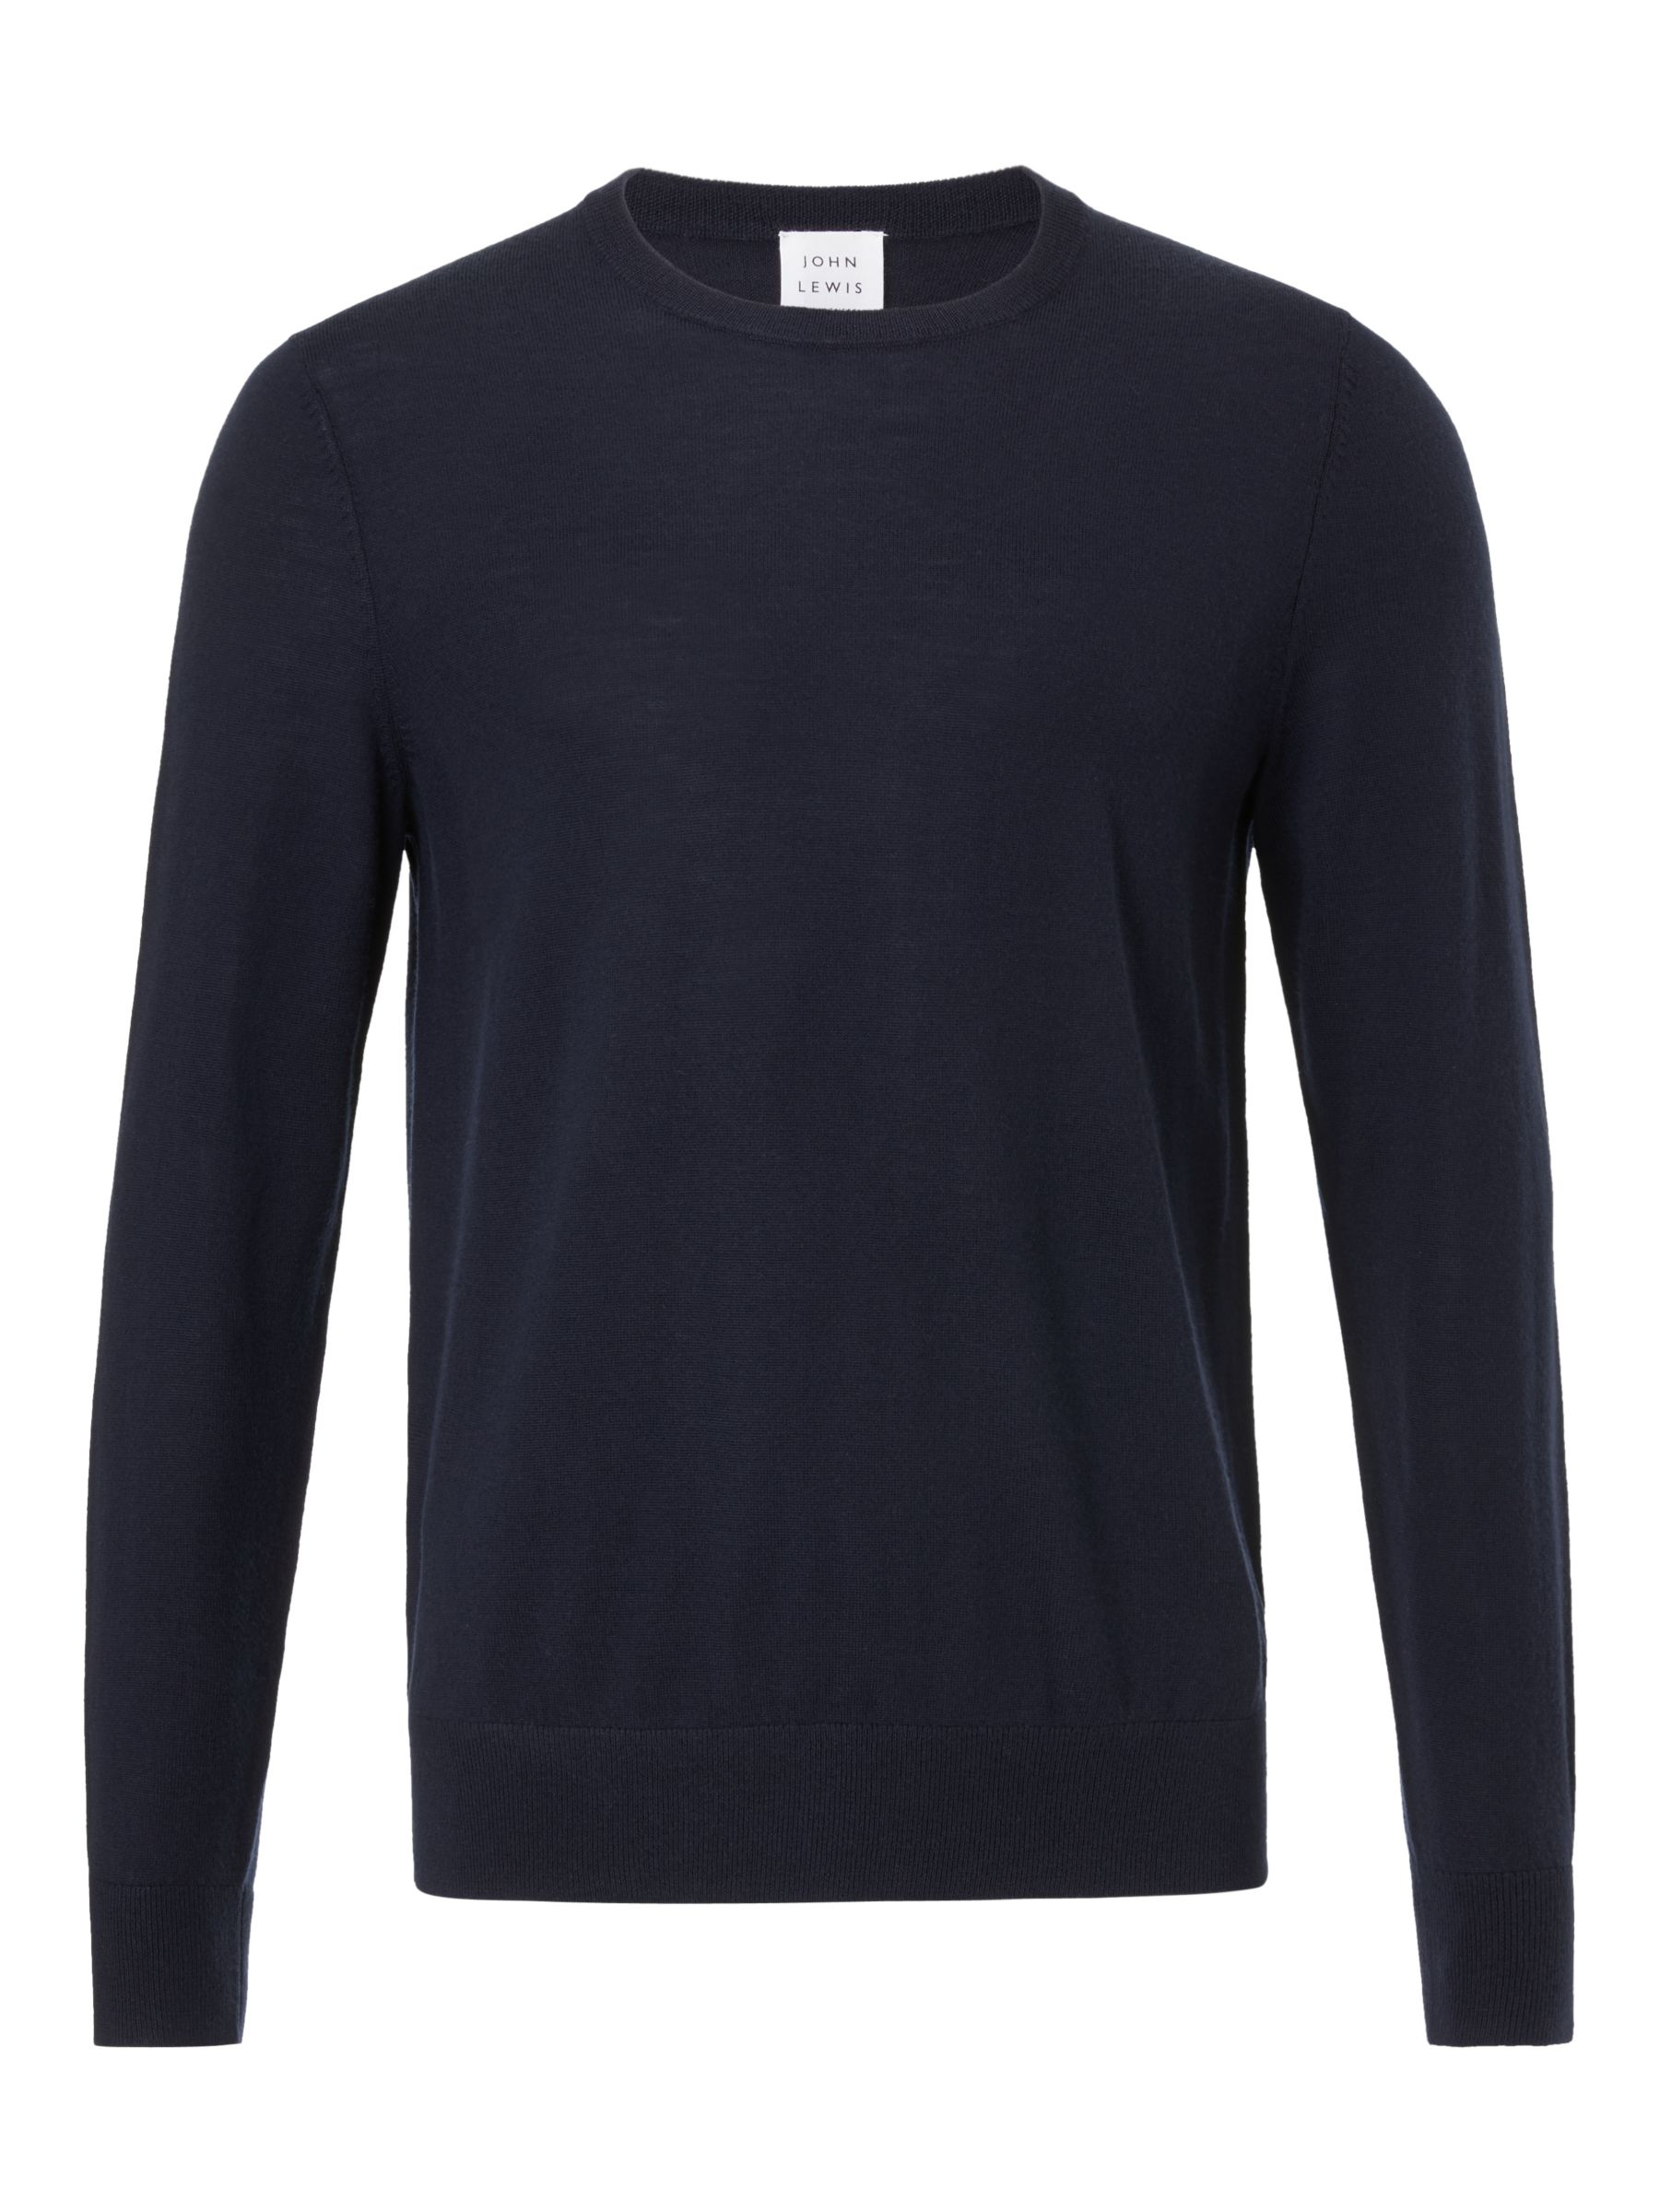 Buy John Lewis & Partners Extra Fine Merino Crew Neck Jumper, Navy, S Online at johnlewis.com